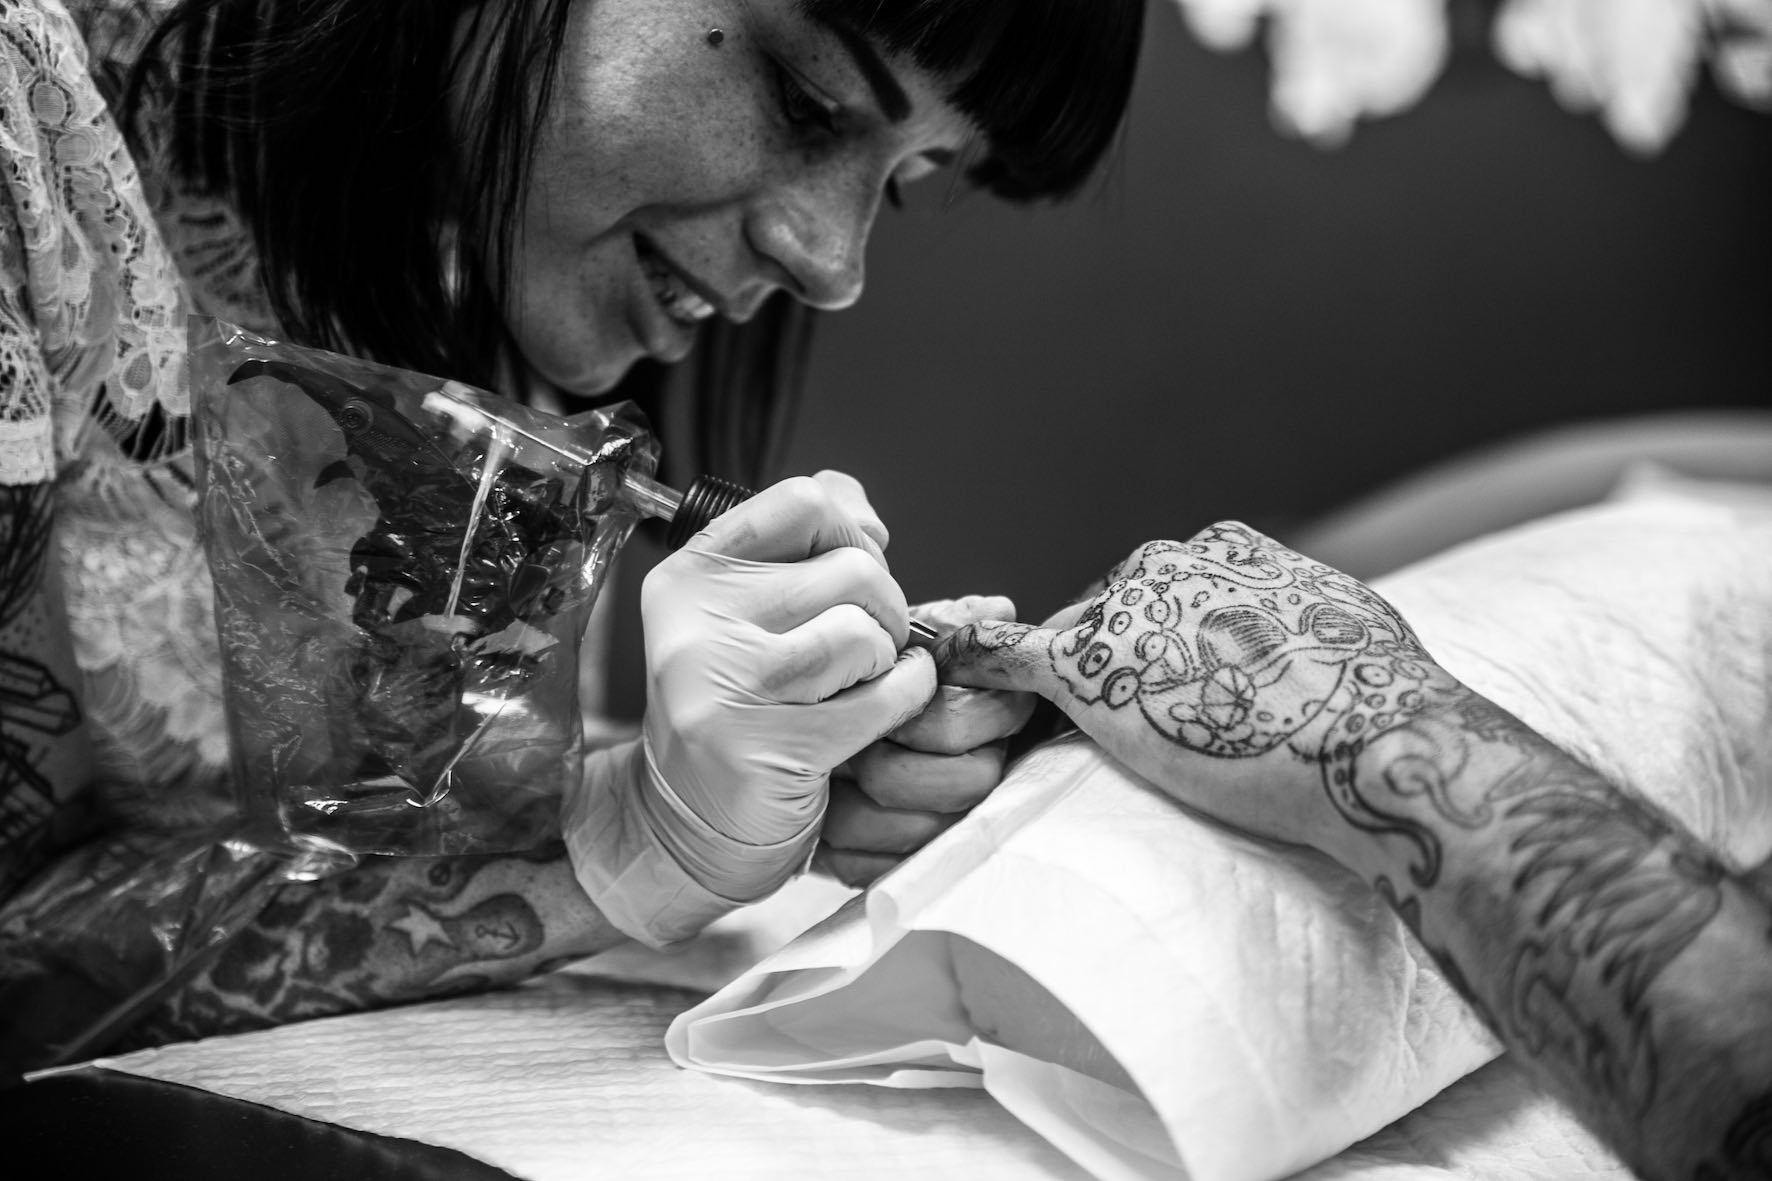 Chelsea-Rae Marsh tattooing one of her clients